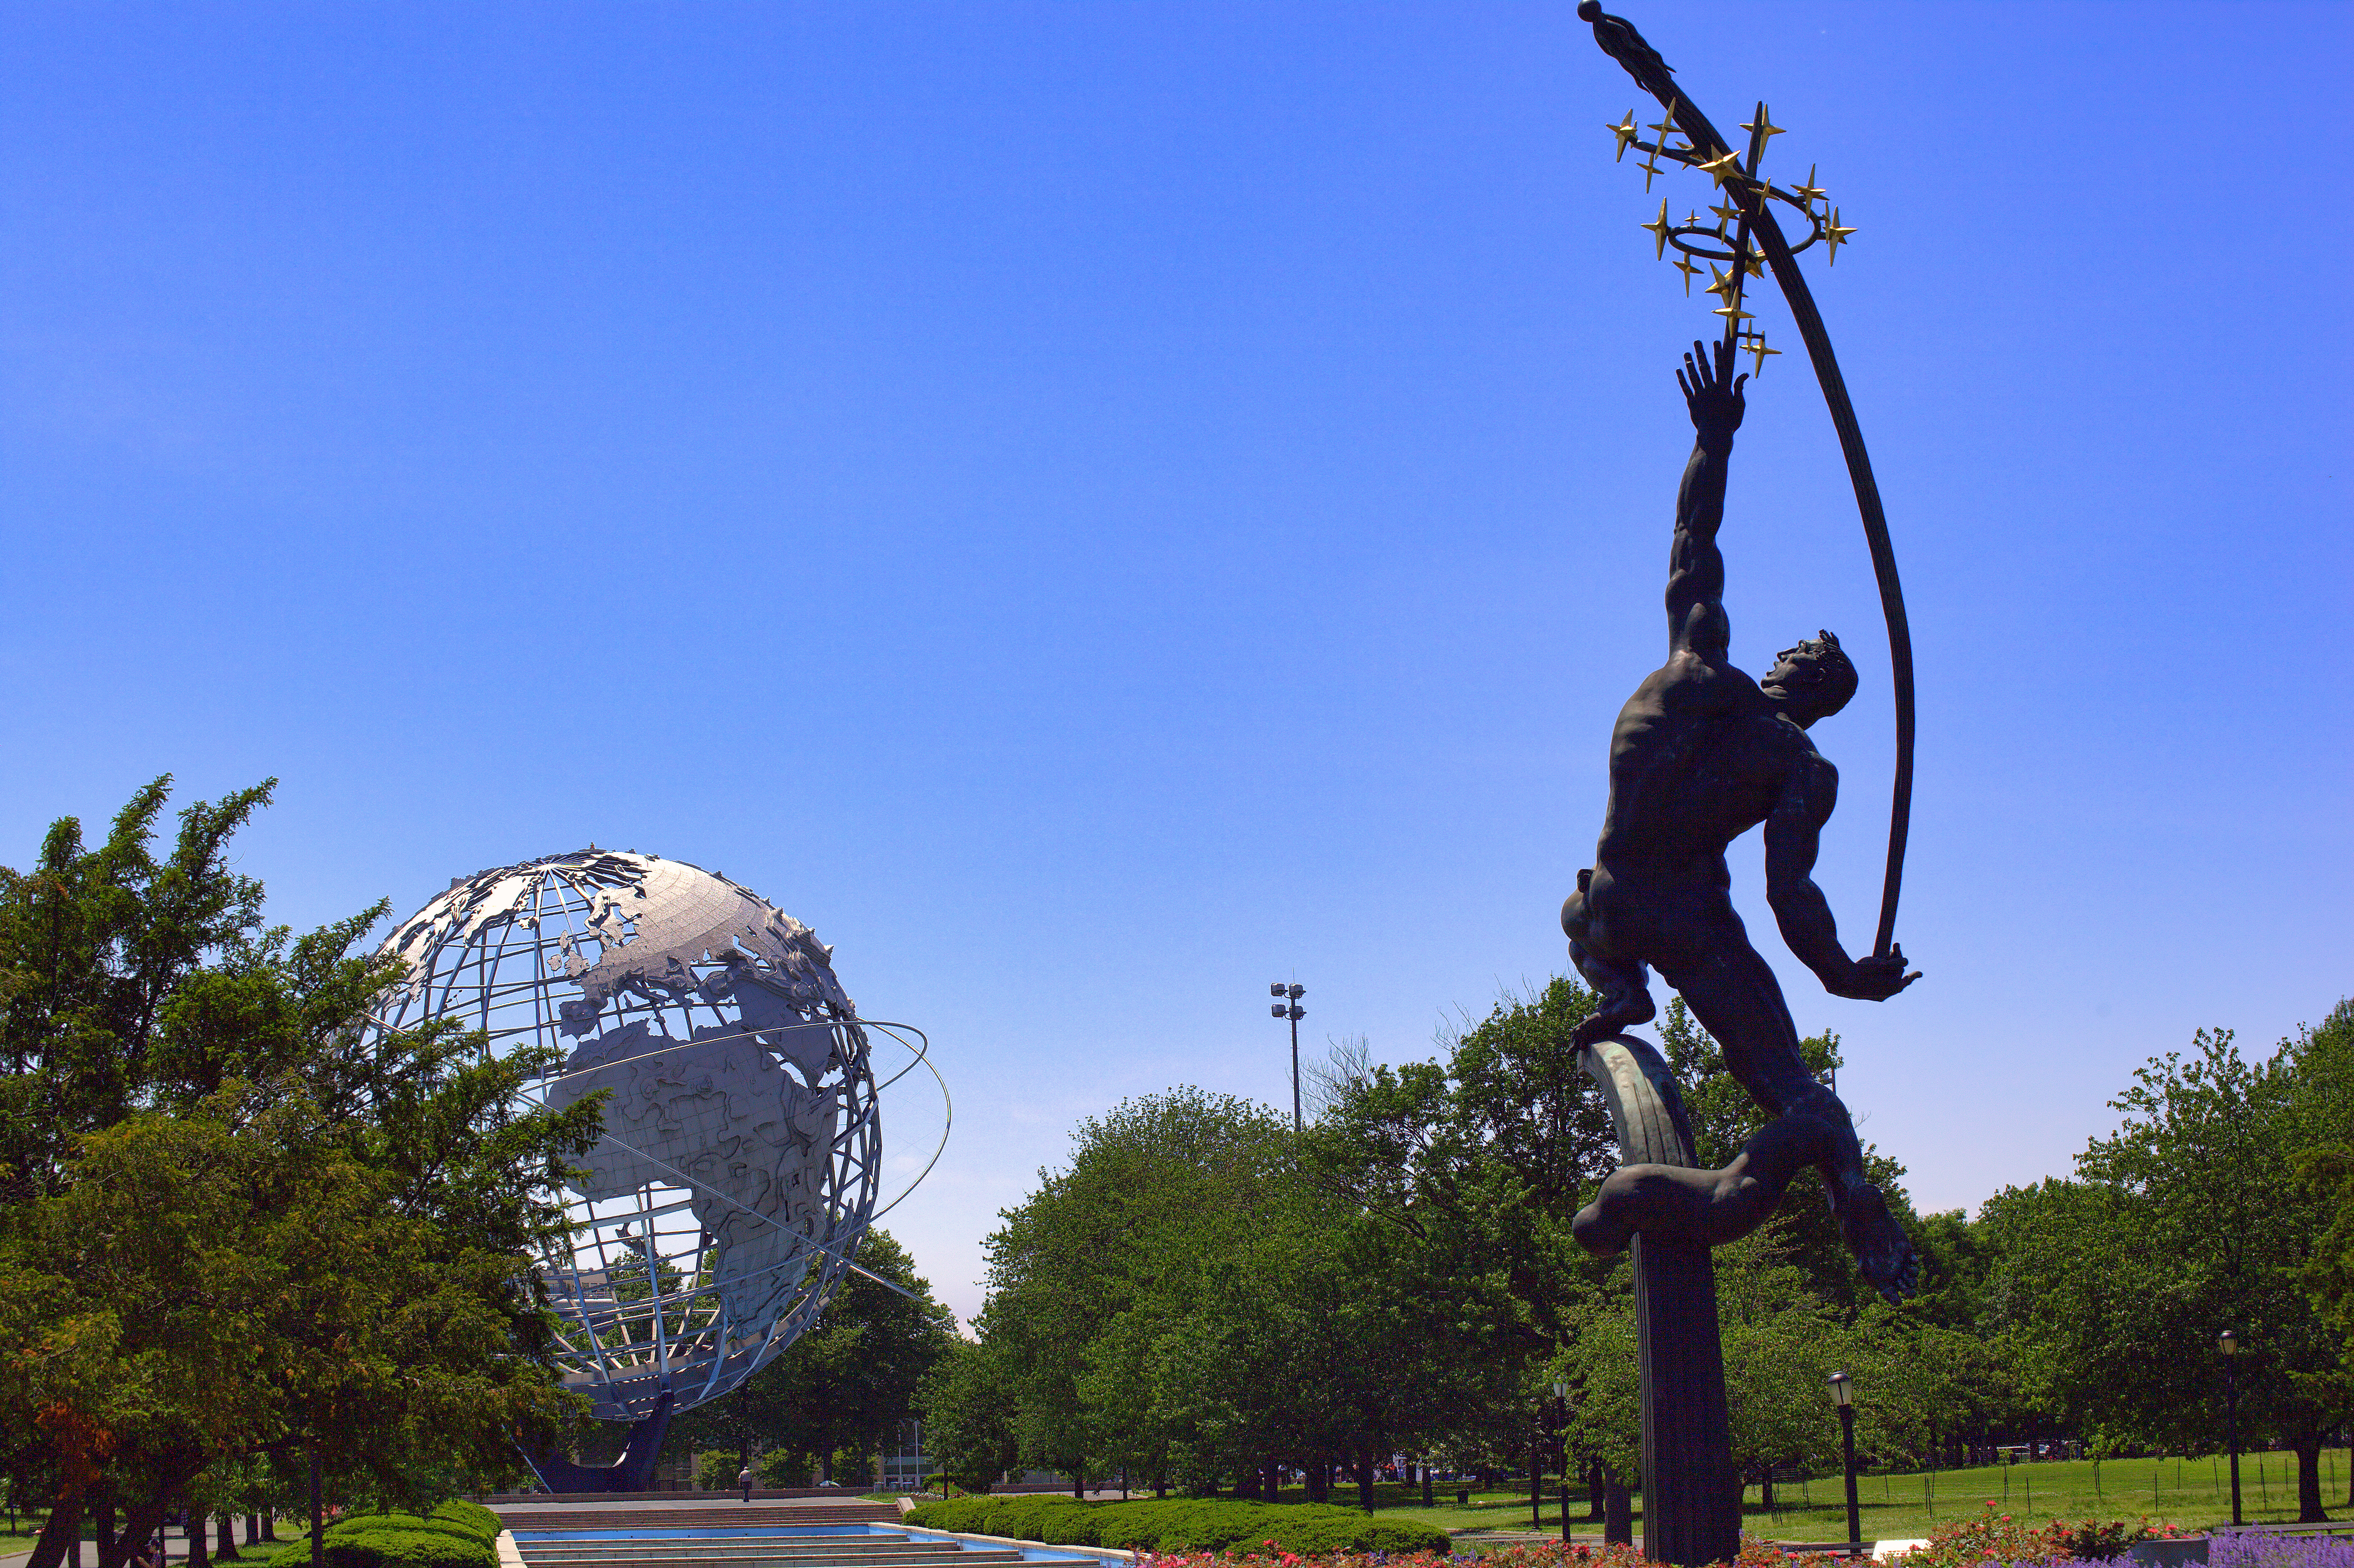 Rocket Thrower (1963) at Flushing Meadows–Corona Park